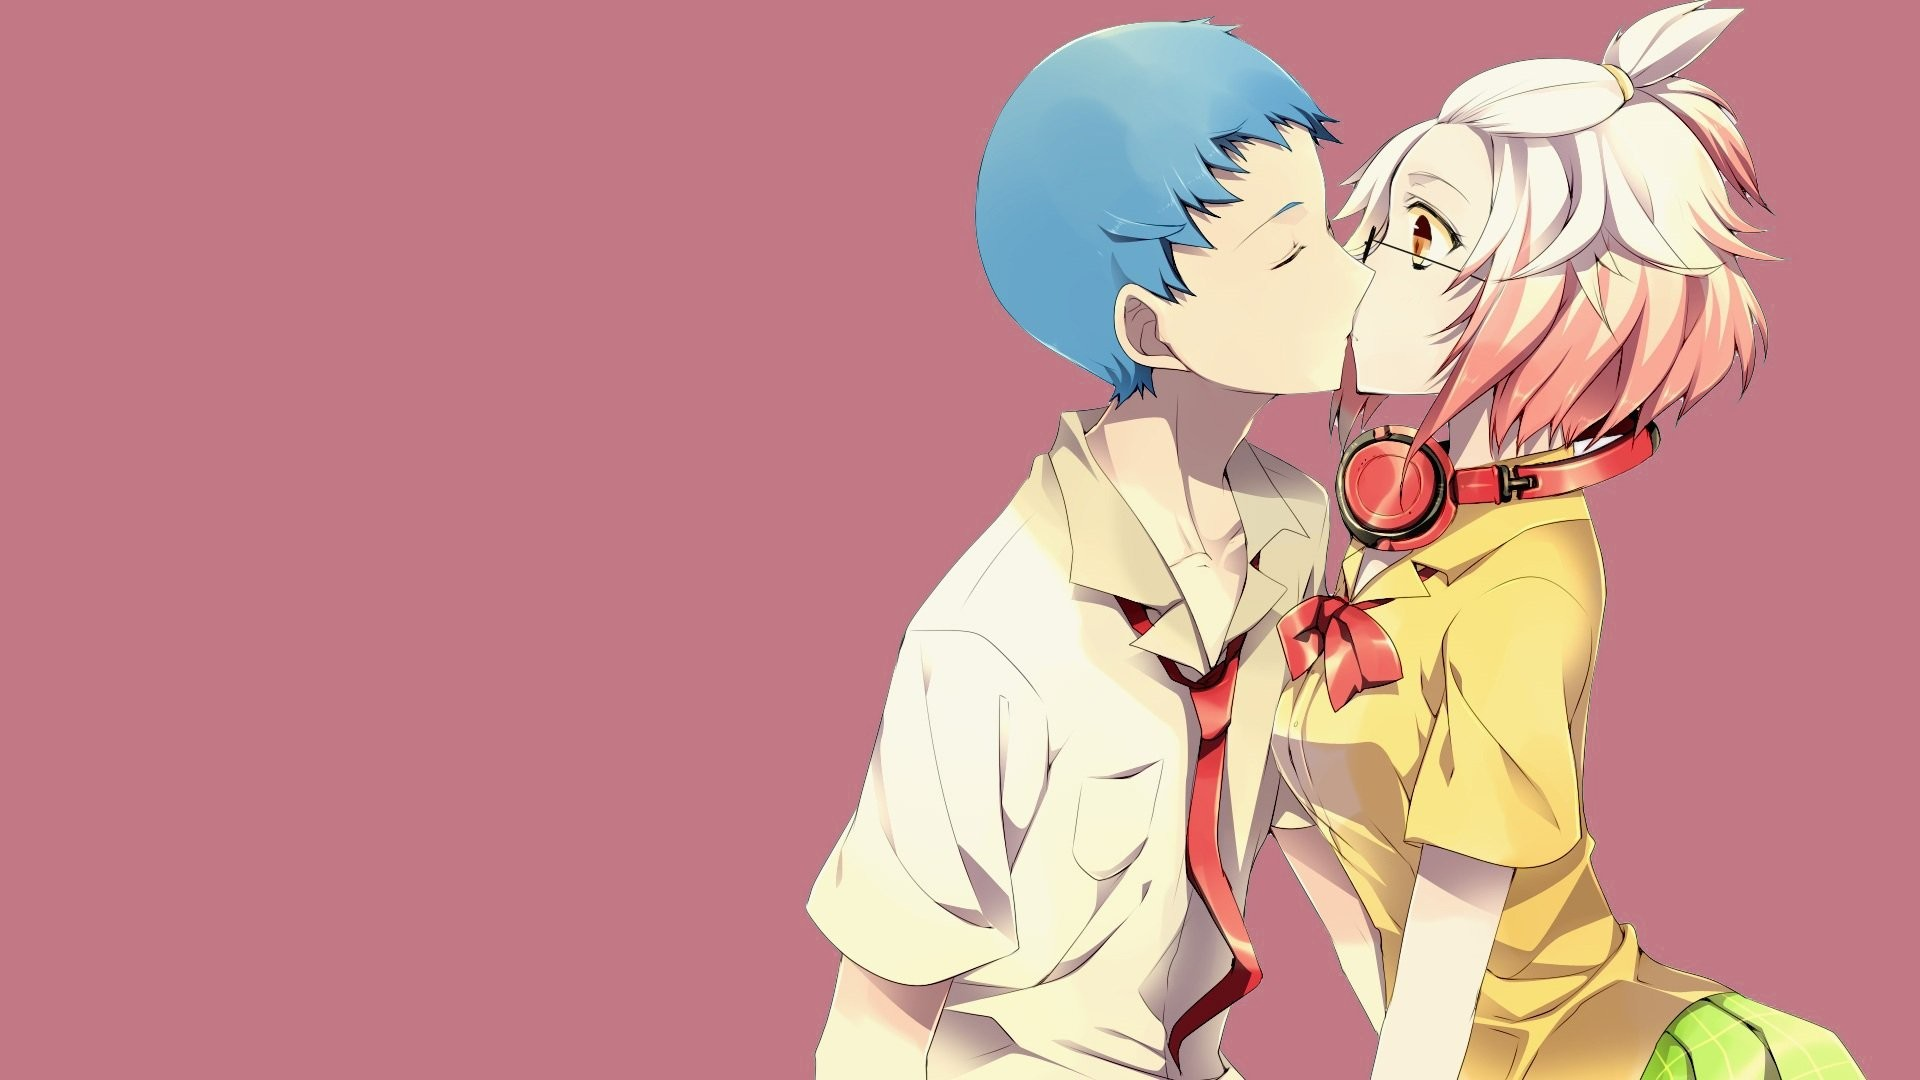 Cute Couple Kiss Wallpaper Download Anime Couple Wallpaper 74 Images